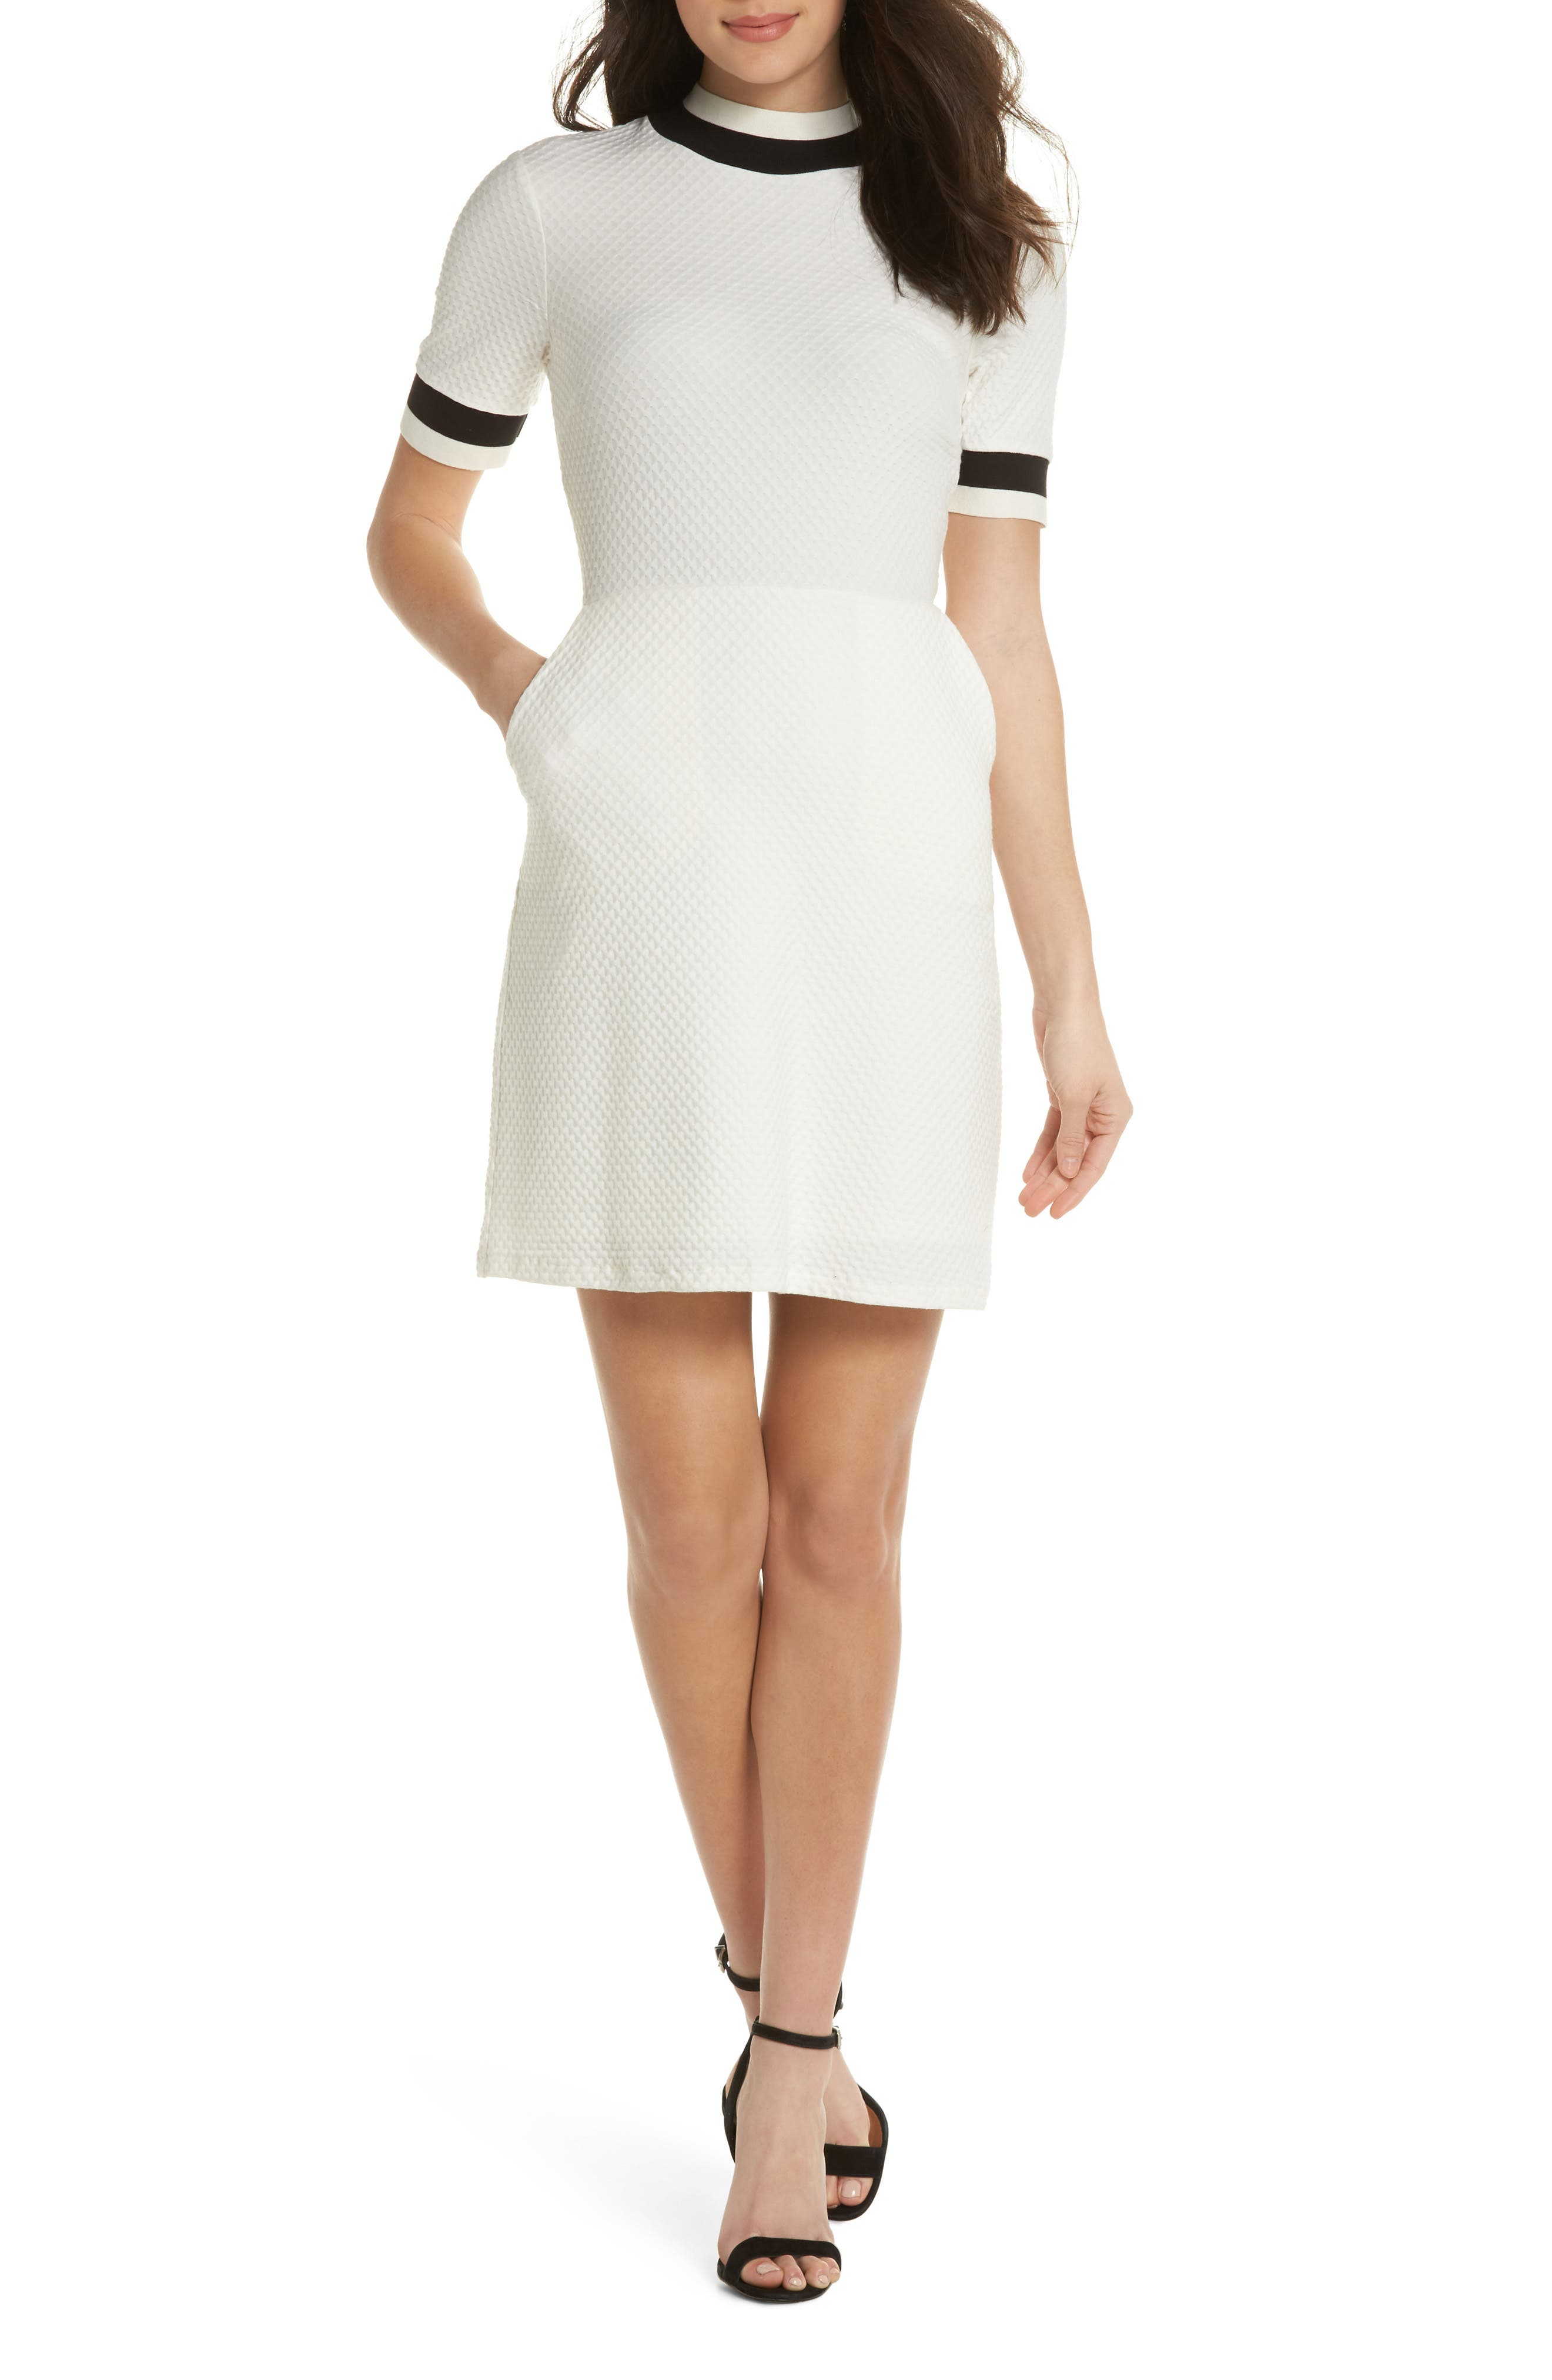 FRENCH CONNECTION, Savos Sudan Jersey Dress, Main thumbnail 1, color, BLACK/ SUMMER WHITE